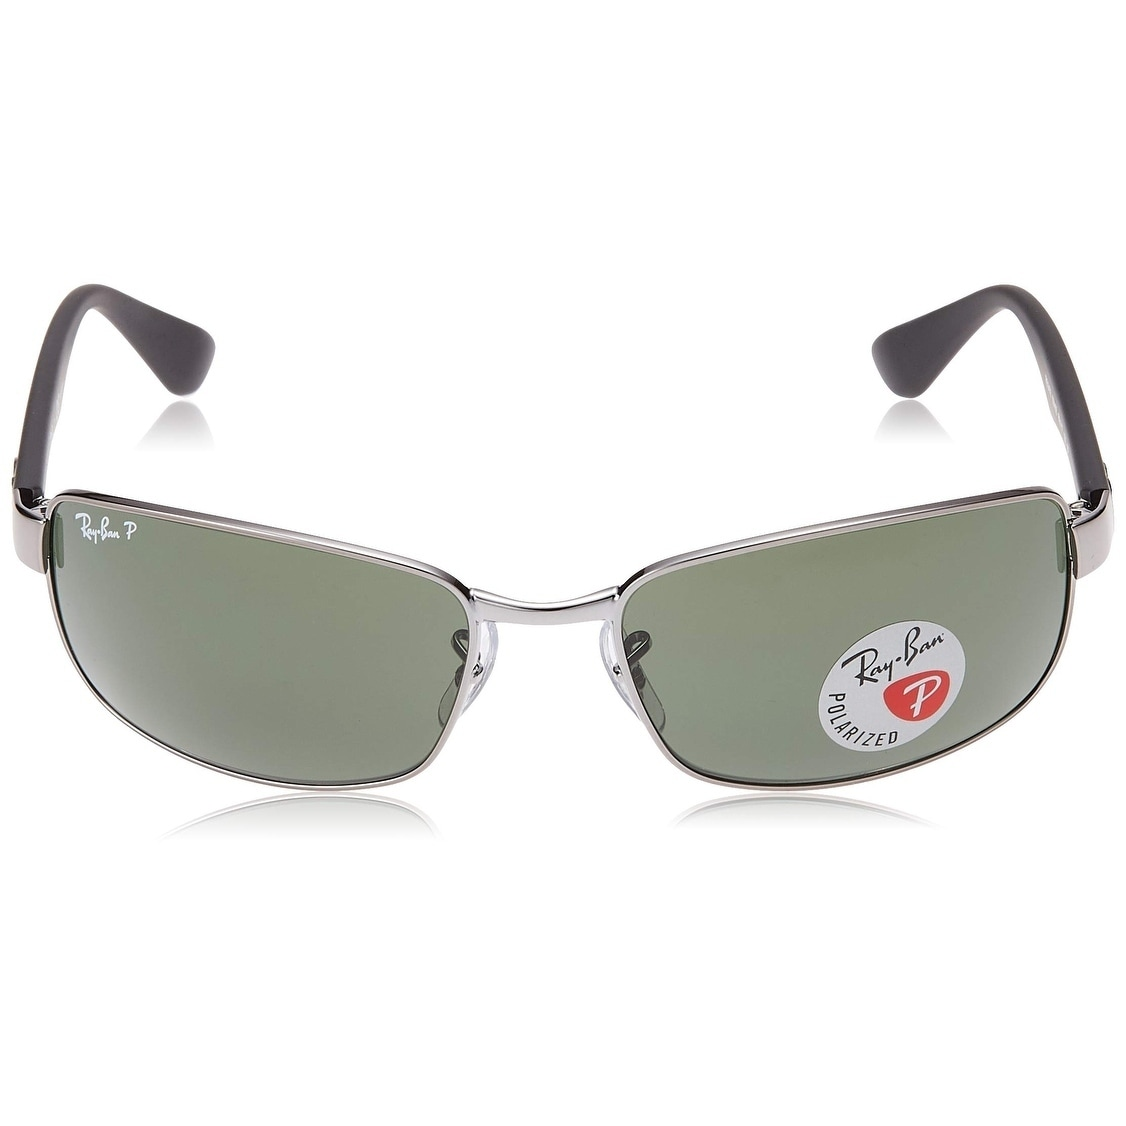 33a662ba0f Shop Ray-Ban RB3478 Gunmetal Black Frame Polarized Green 60mm Lens  Sunglasses - Free Shipping Today - Overstock - 25602952